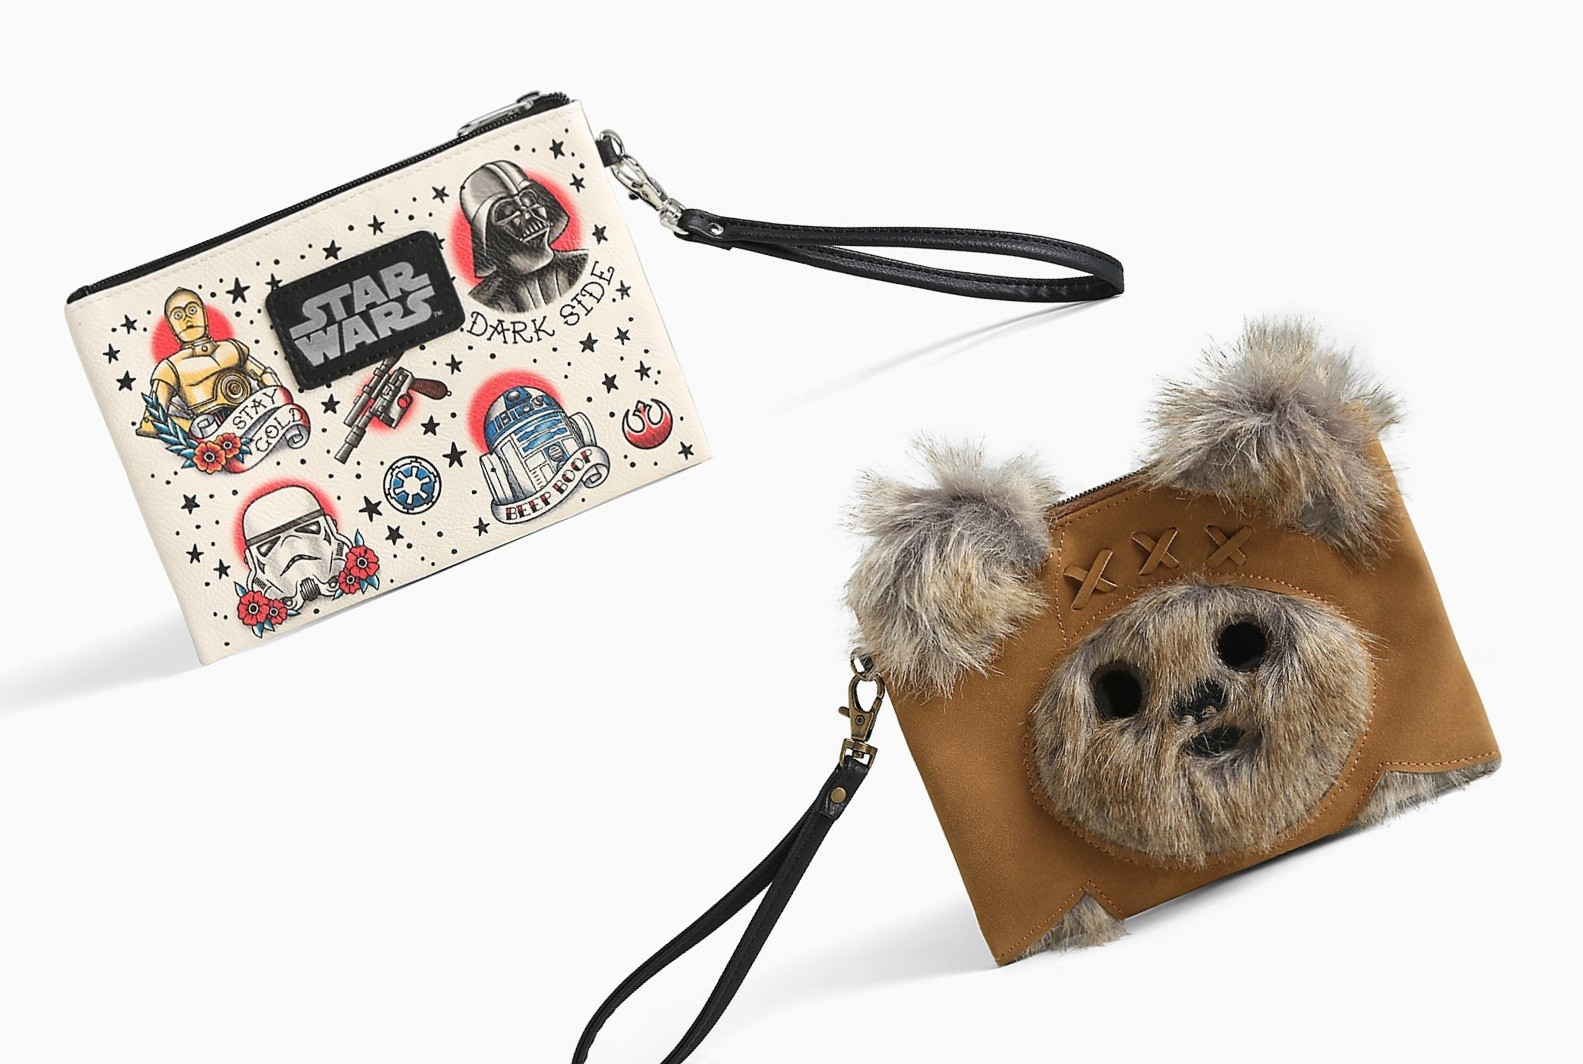 New Loungefly Star Wars clutches